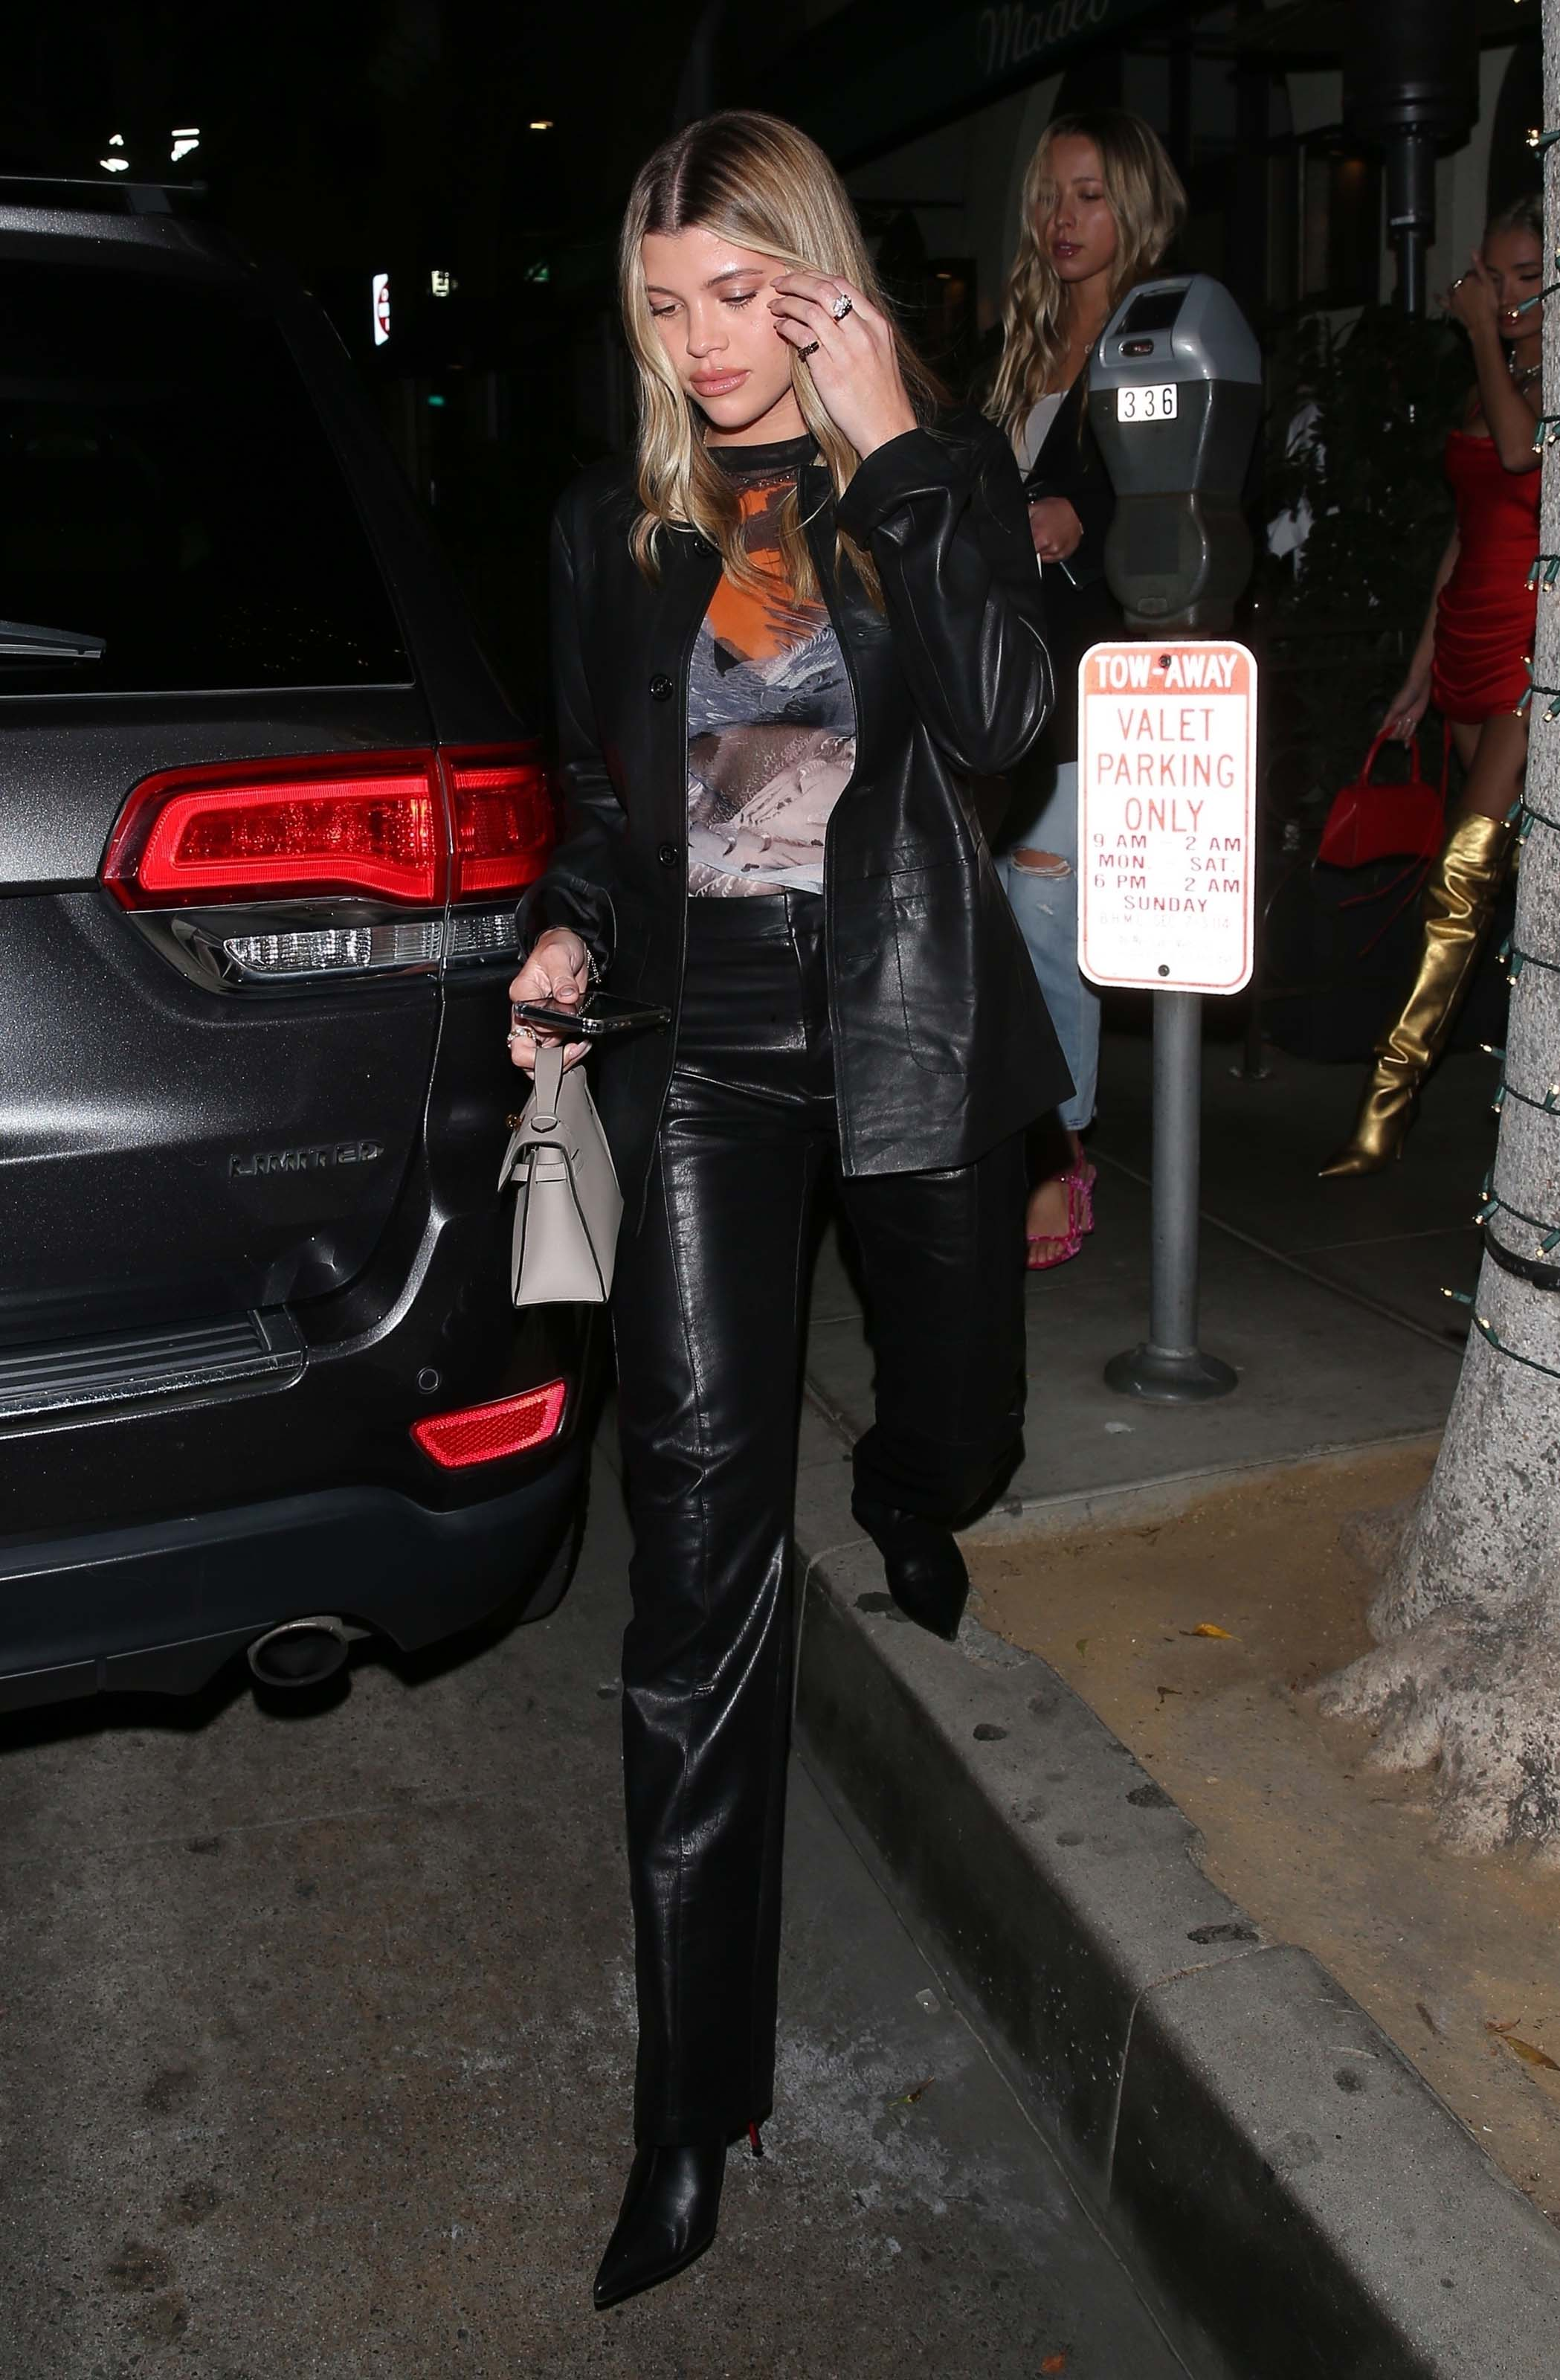 Sofia Richie & Pia Mia Perez leave after dinner together